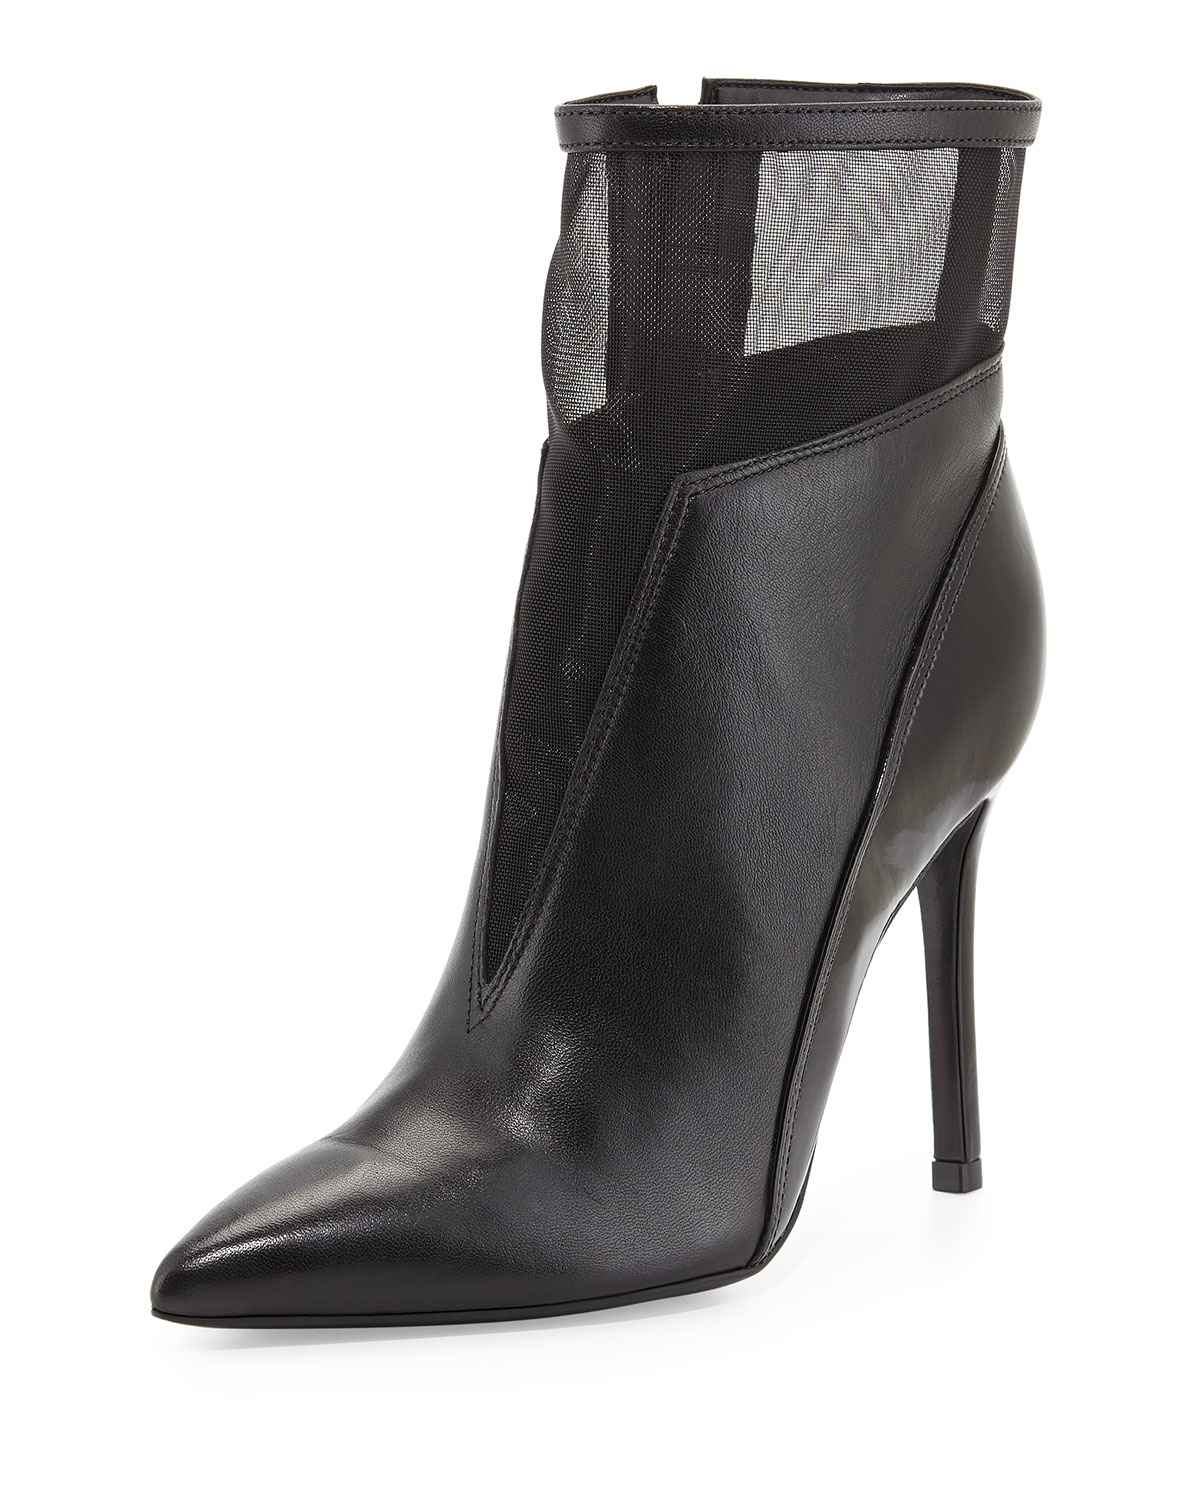 Schutz Neia Leather/mesh Ankle Boot in Black | Lyst